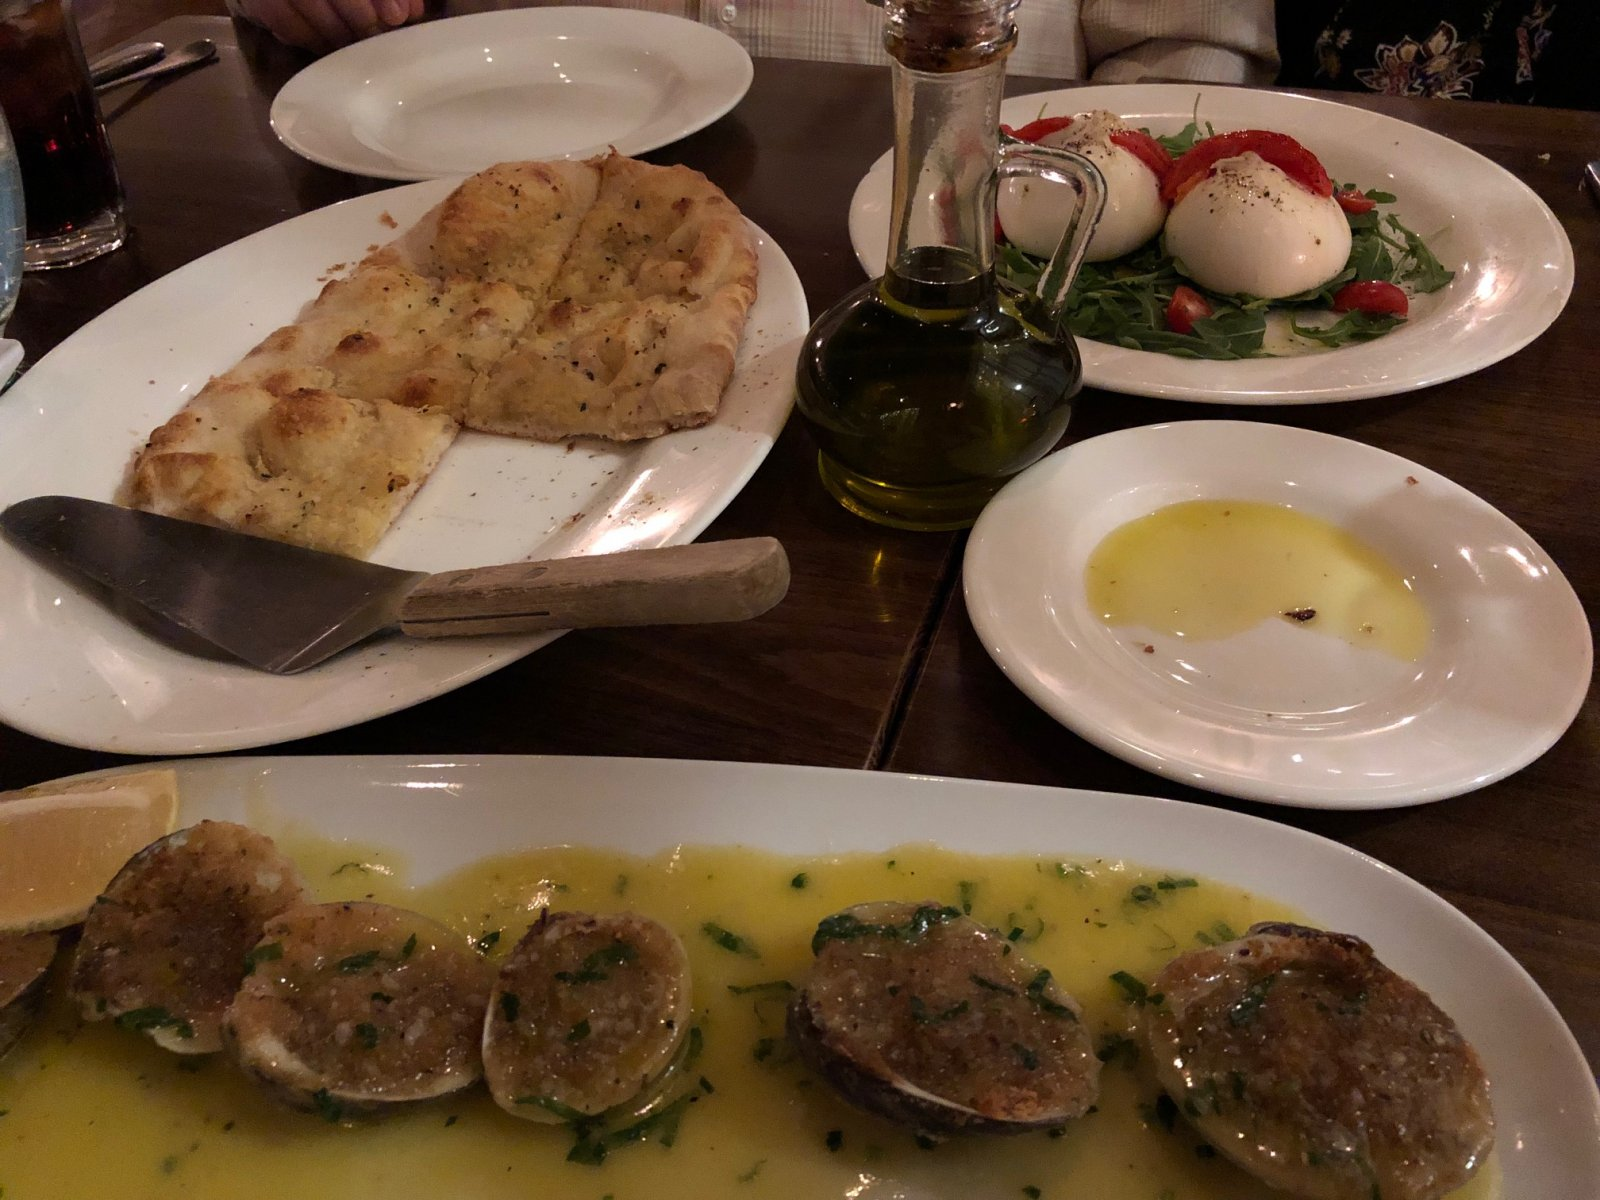 Palermo appetizers